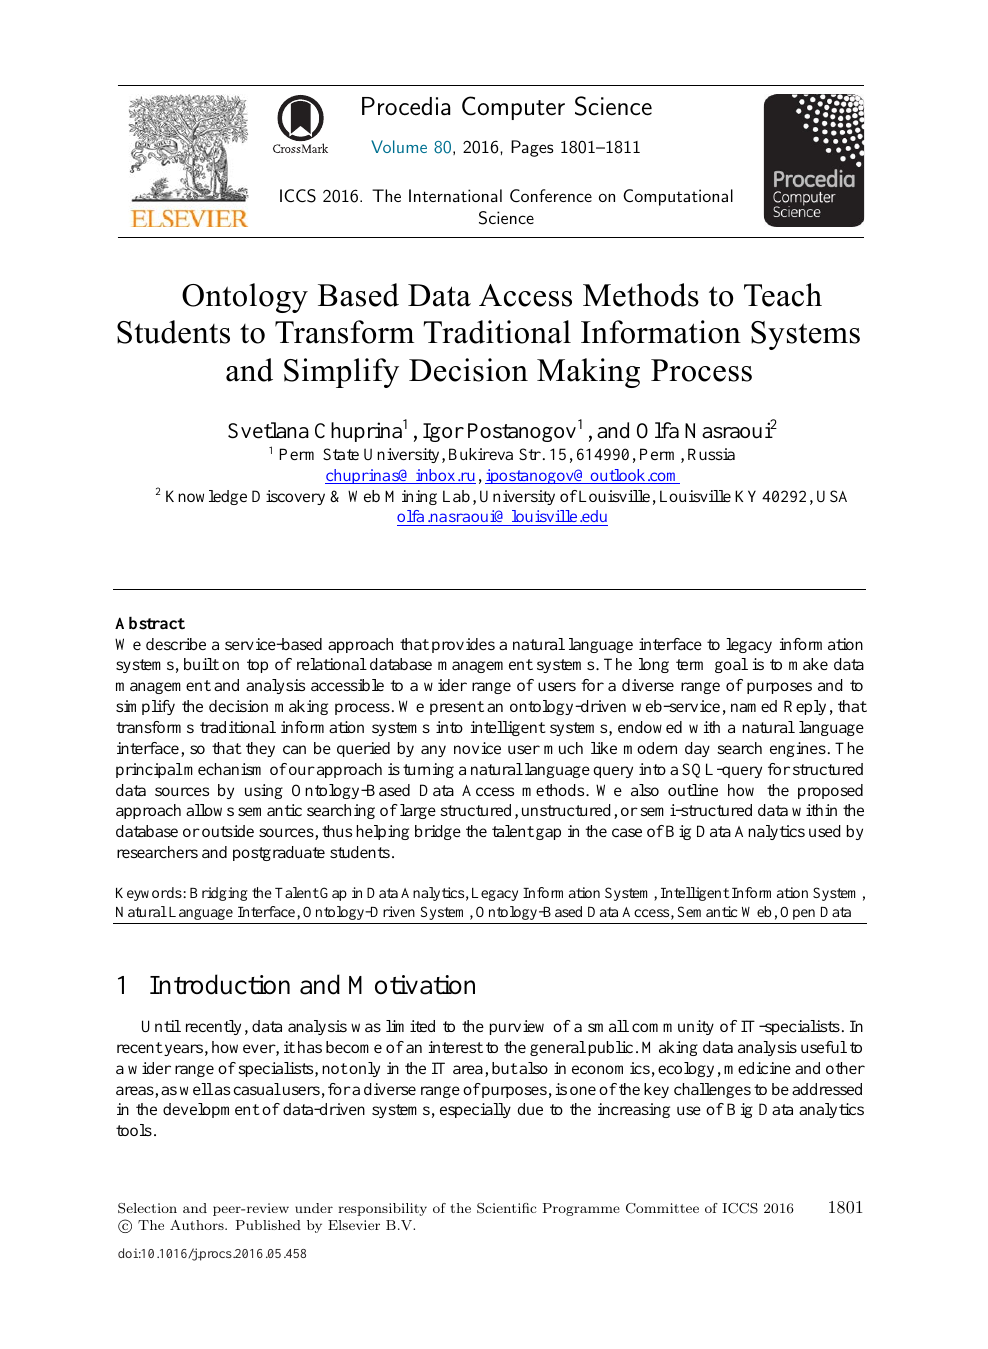 Ontology Based Data Access Methods to Teach Students to